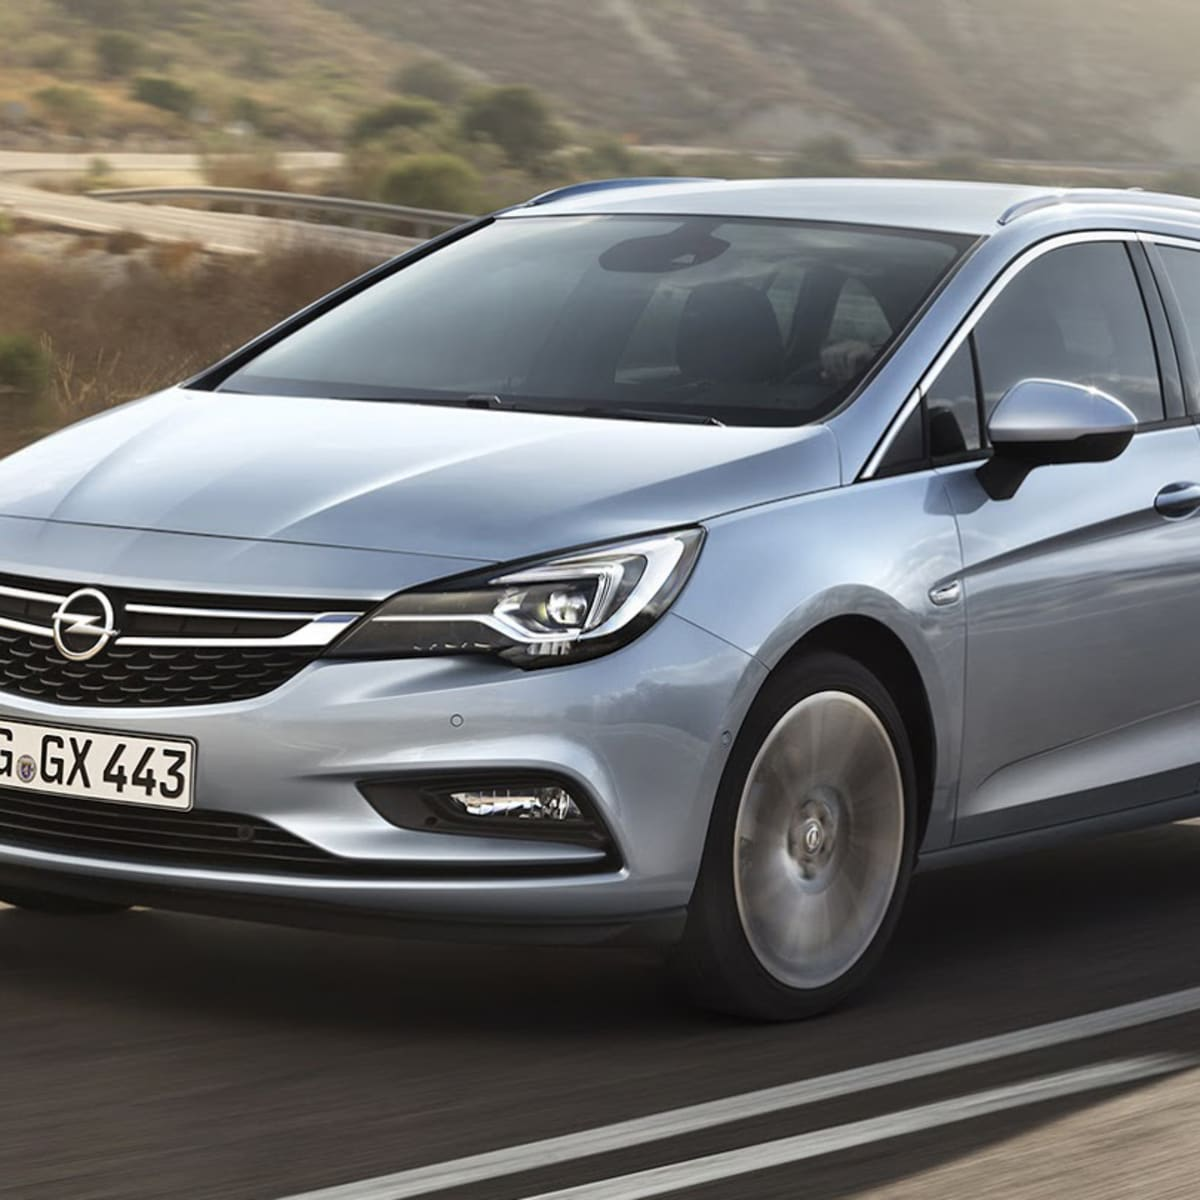 2020 Opel Astra Sedan, Release Date, Price, And Design >> Opel Astra Sports Tourer Wagon To Form Part Of Holden S 24